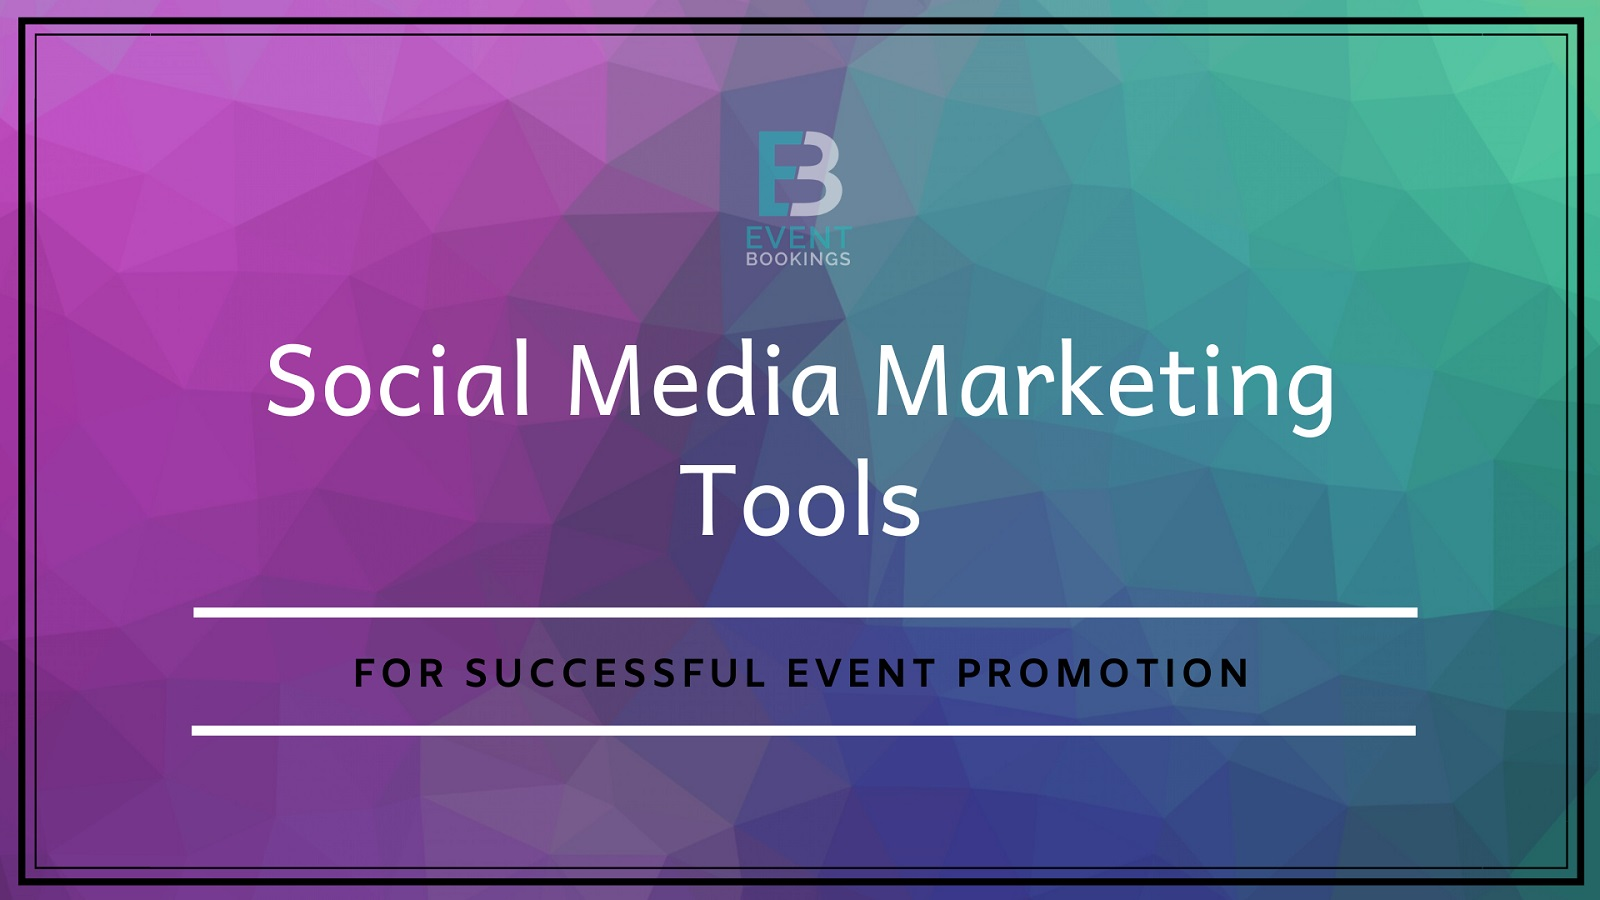 Social media marketing tools for events - EventBookings